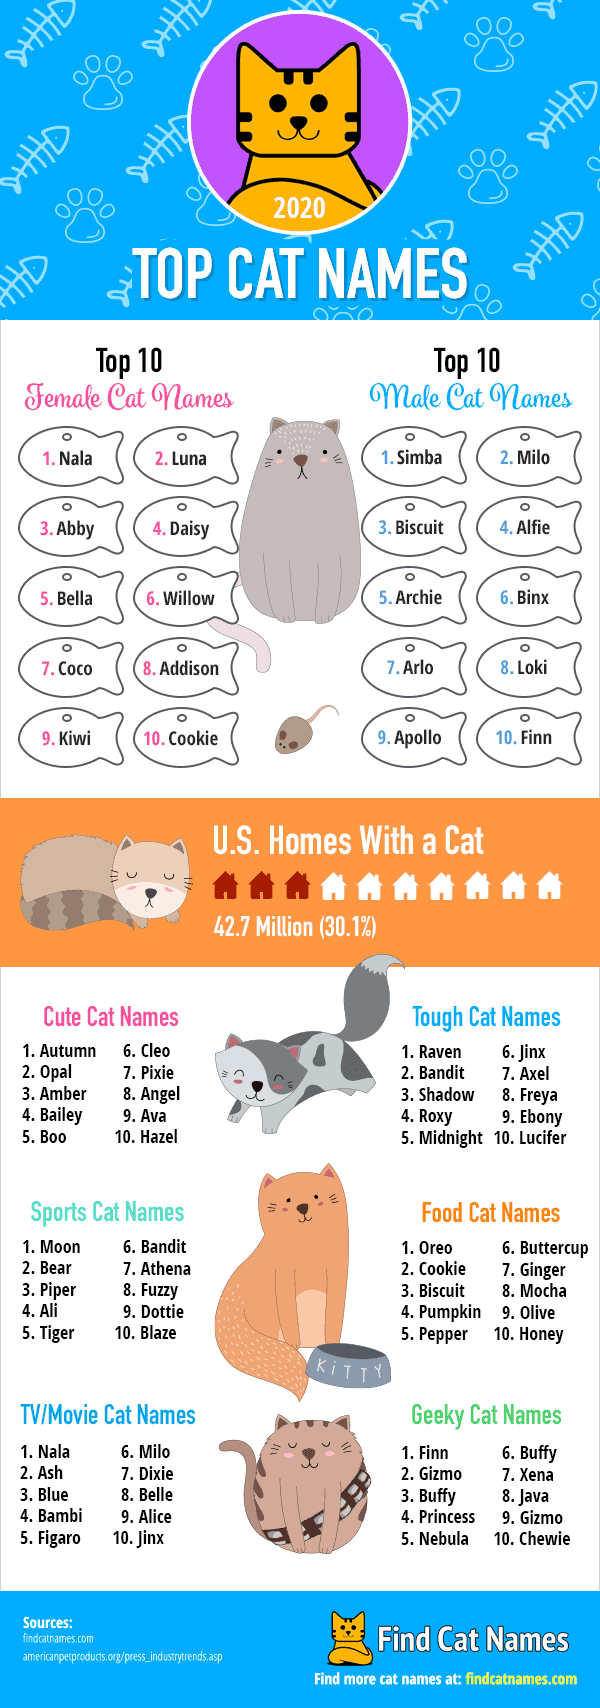 top cat names of 2020 infographic